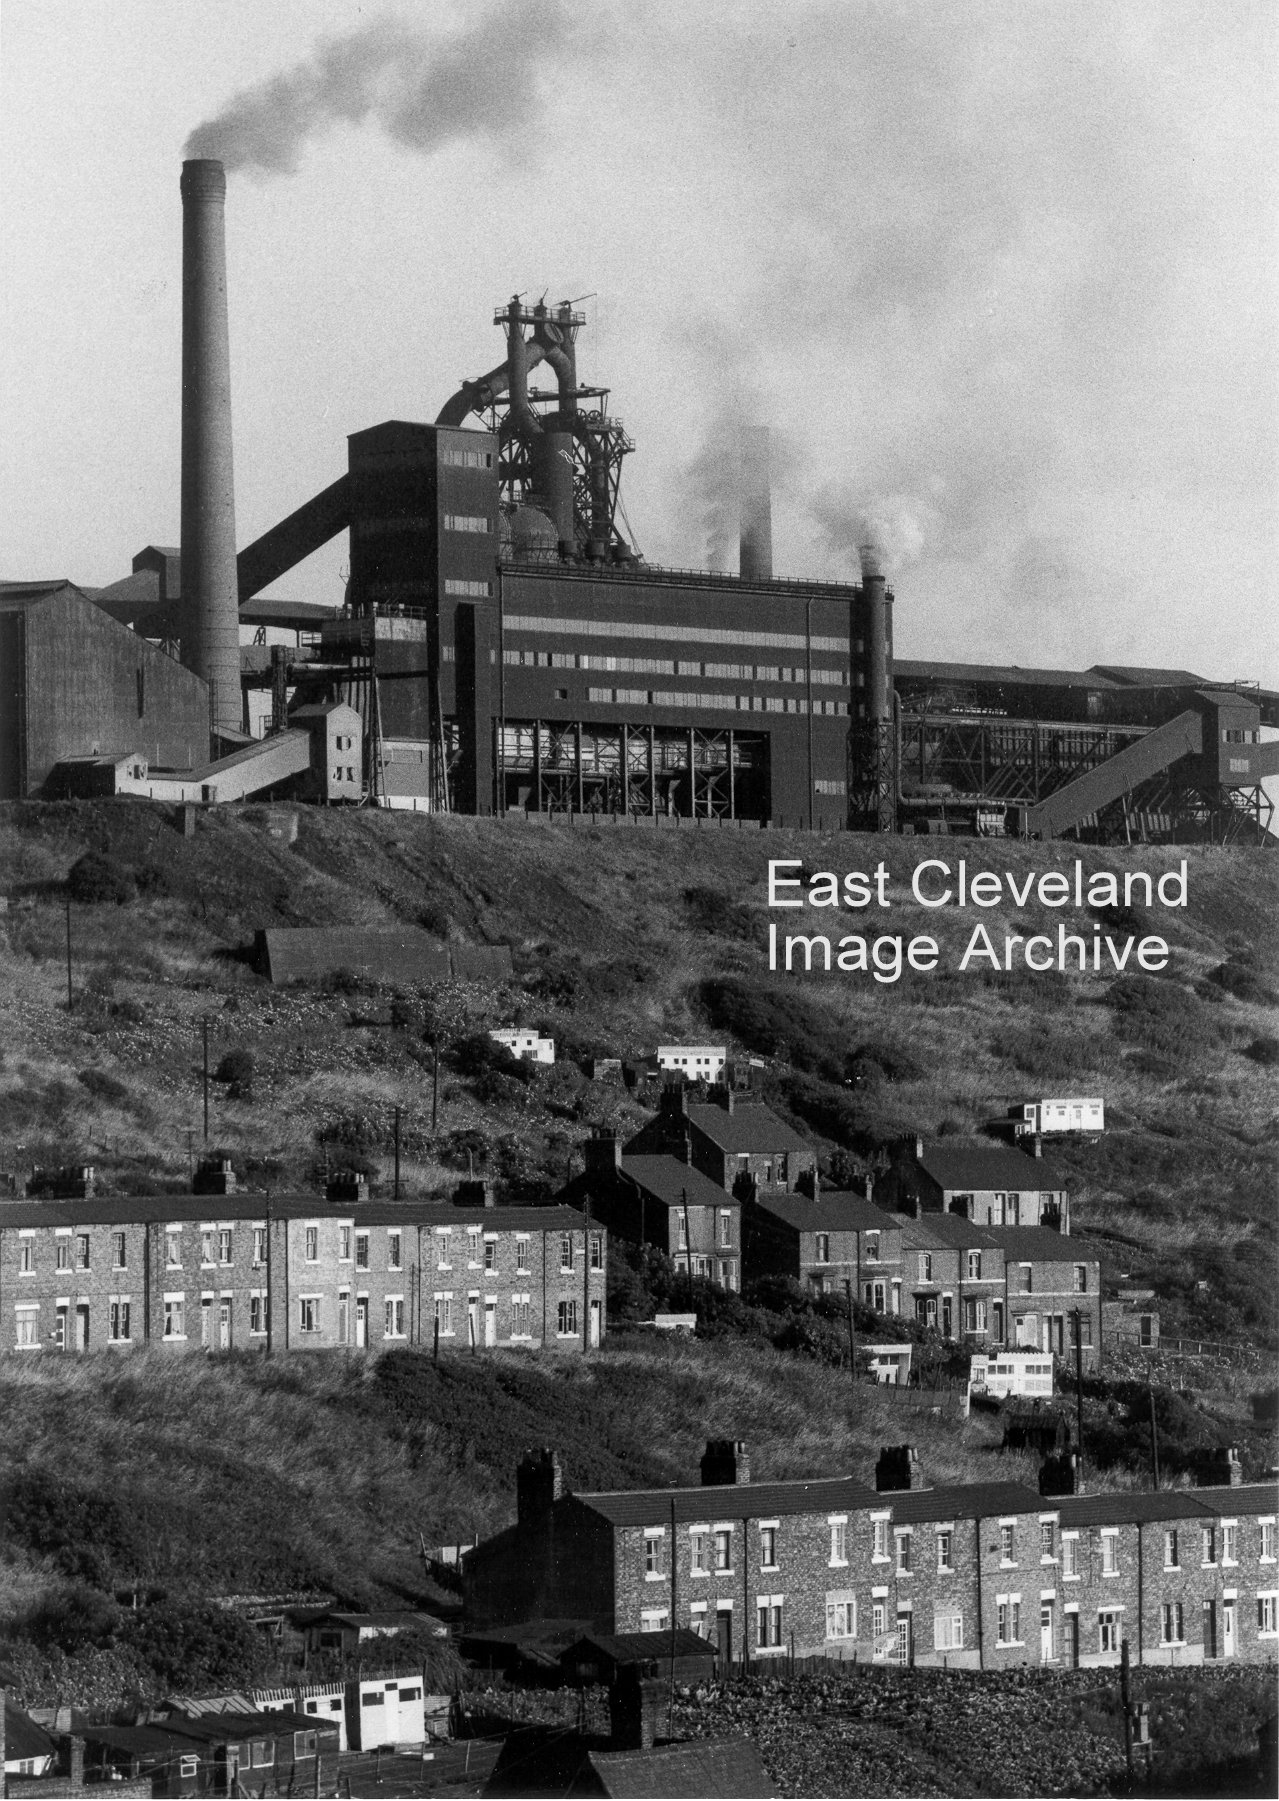 East Coast Diesel >> Skinningrove Iron and Steel Works Sinter Plant « East Cleveland Image Archive